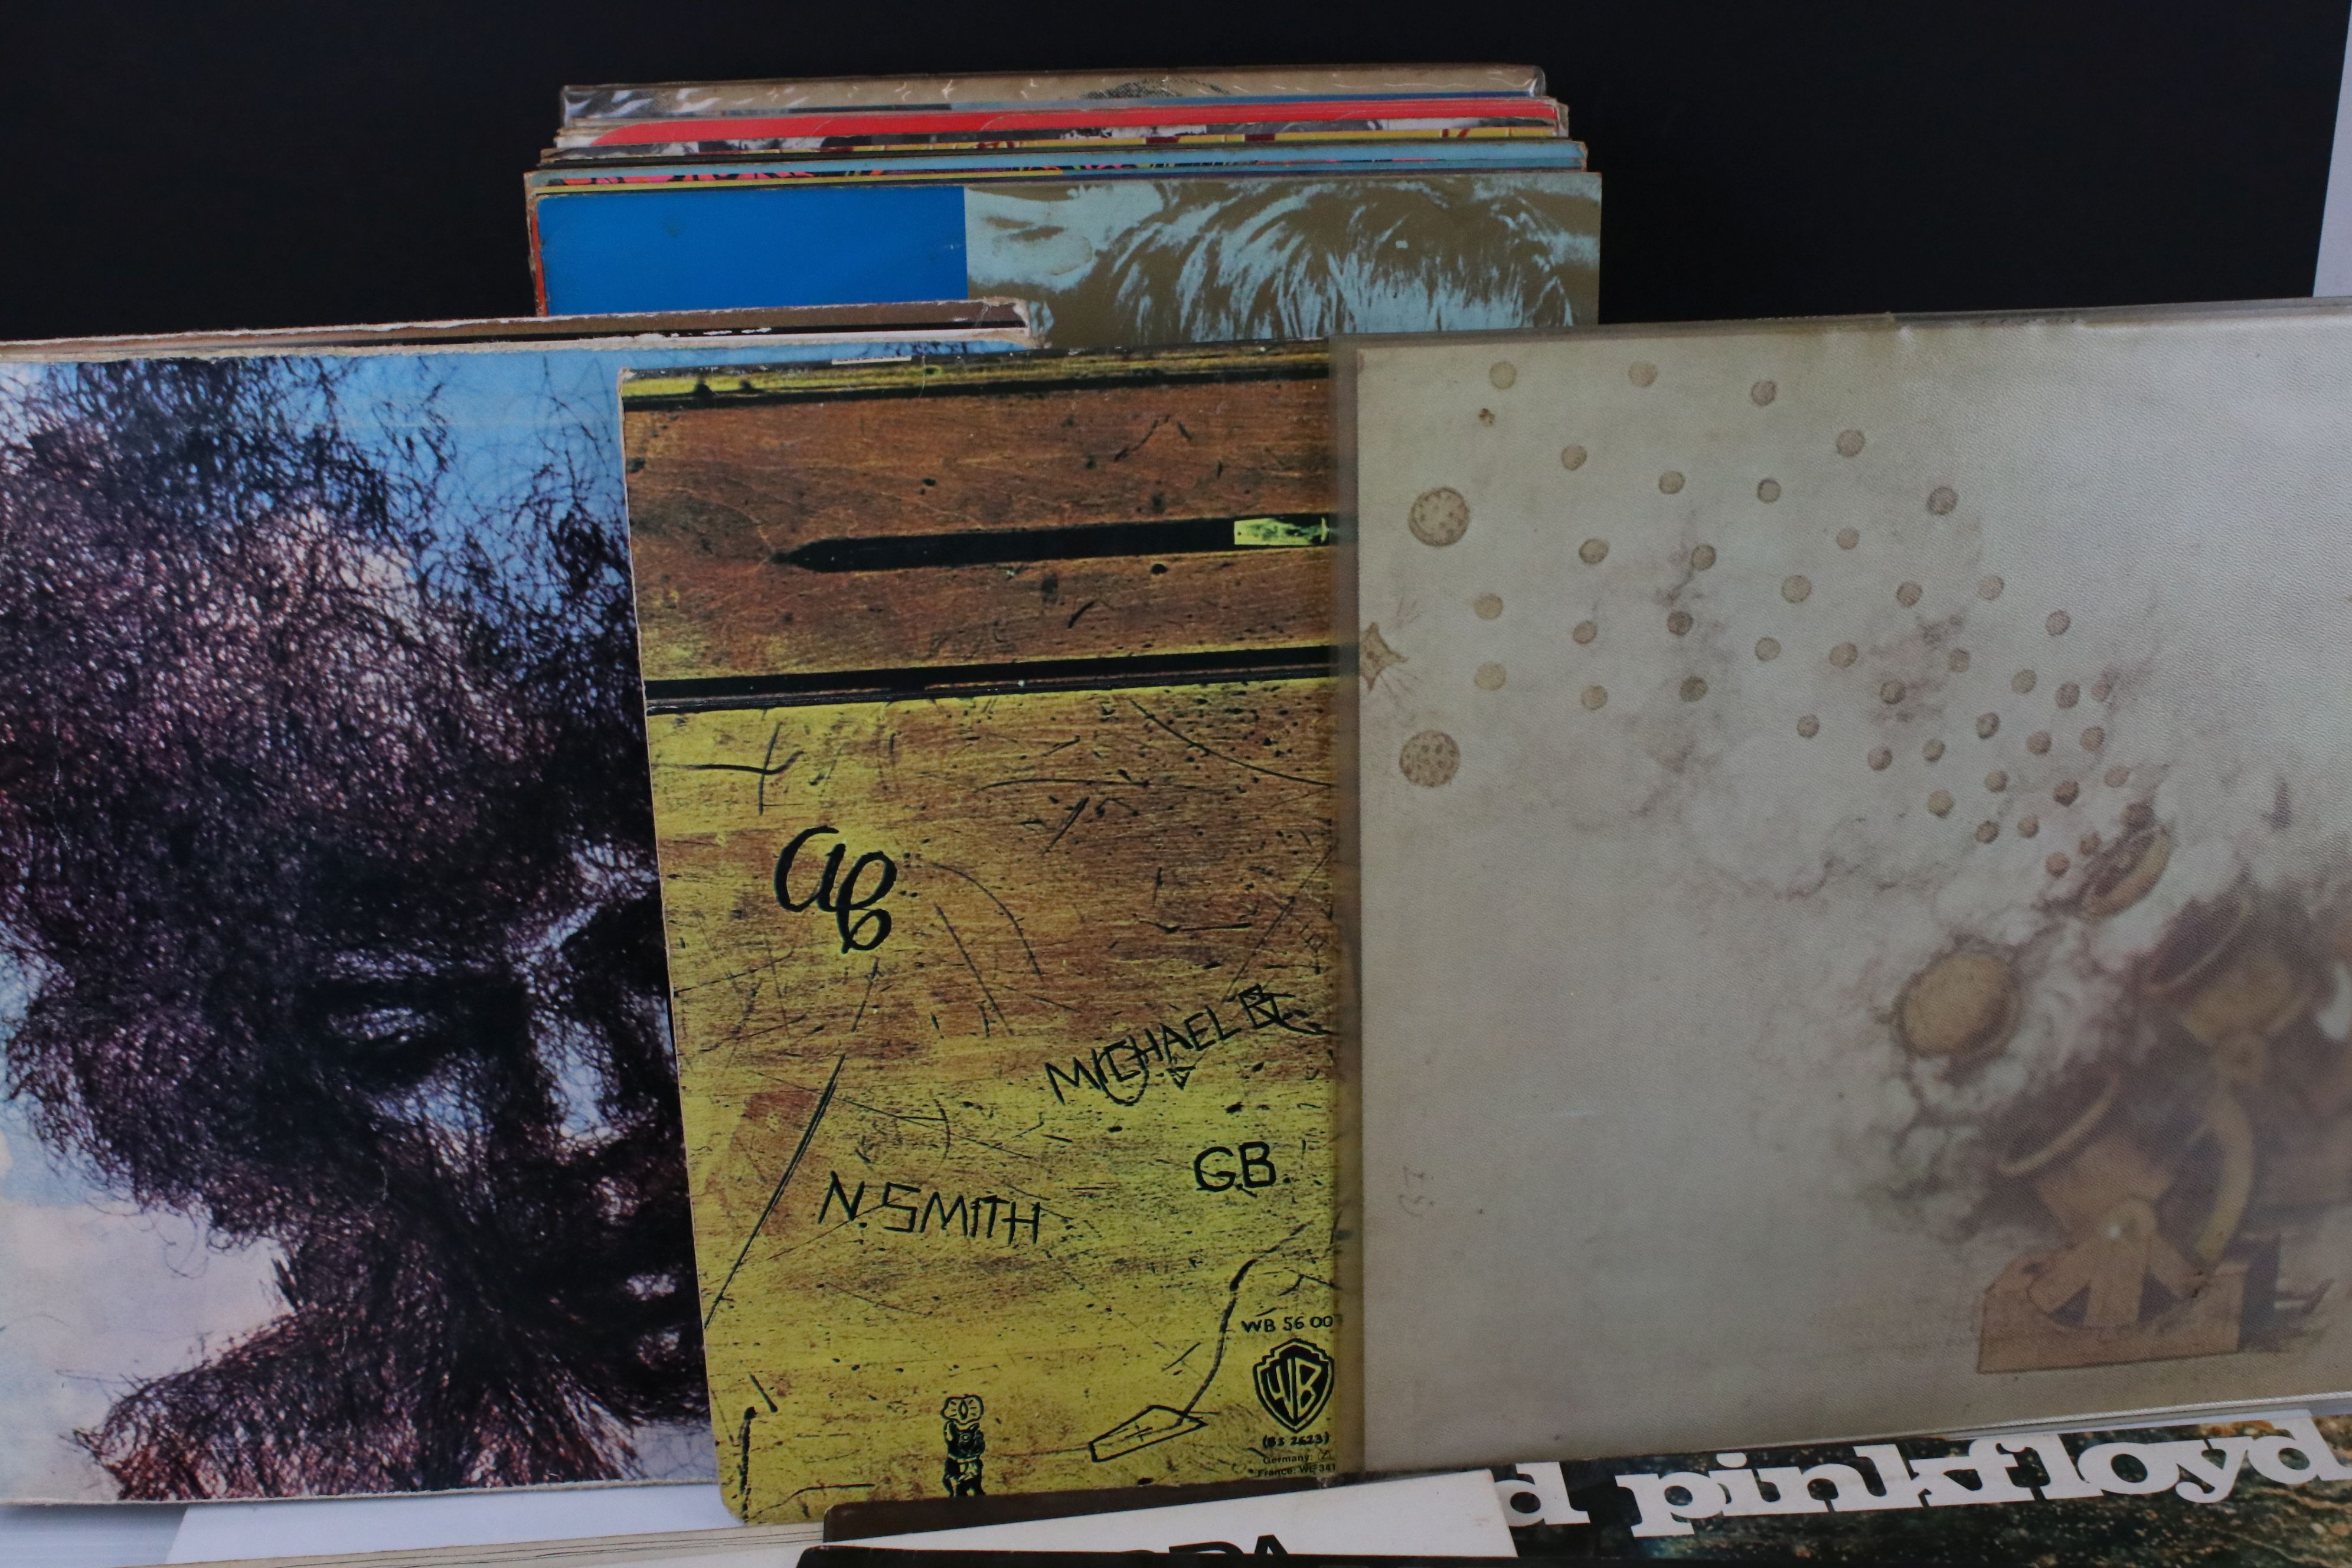 Vinyl - Collection of over 30 LP's mainly rock including Pink Floyd A Saucerful Of Secrets (SCX - Image 3 of 11